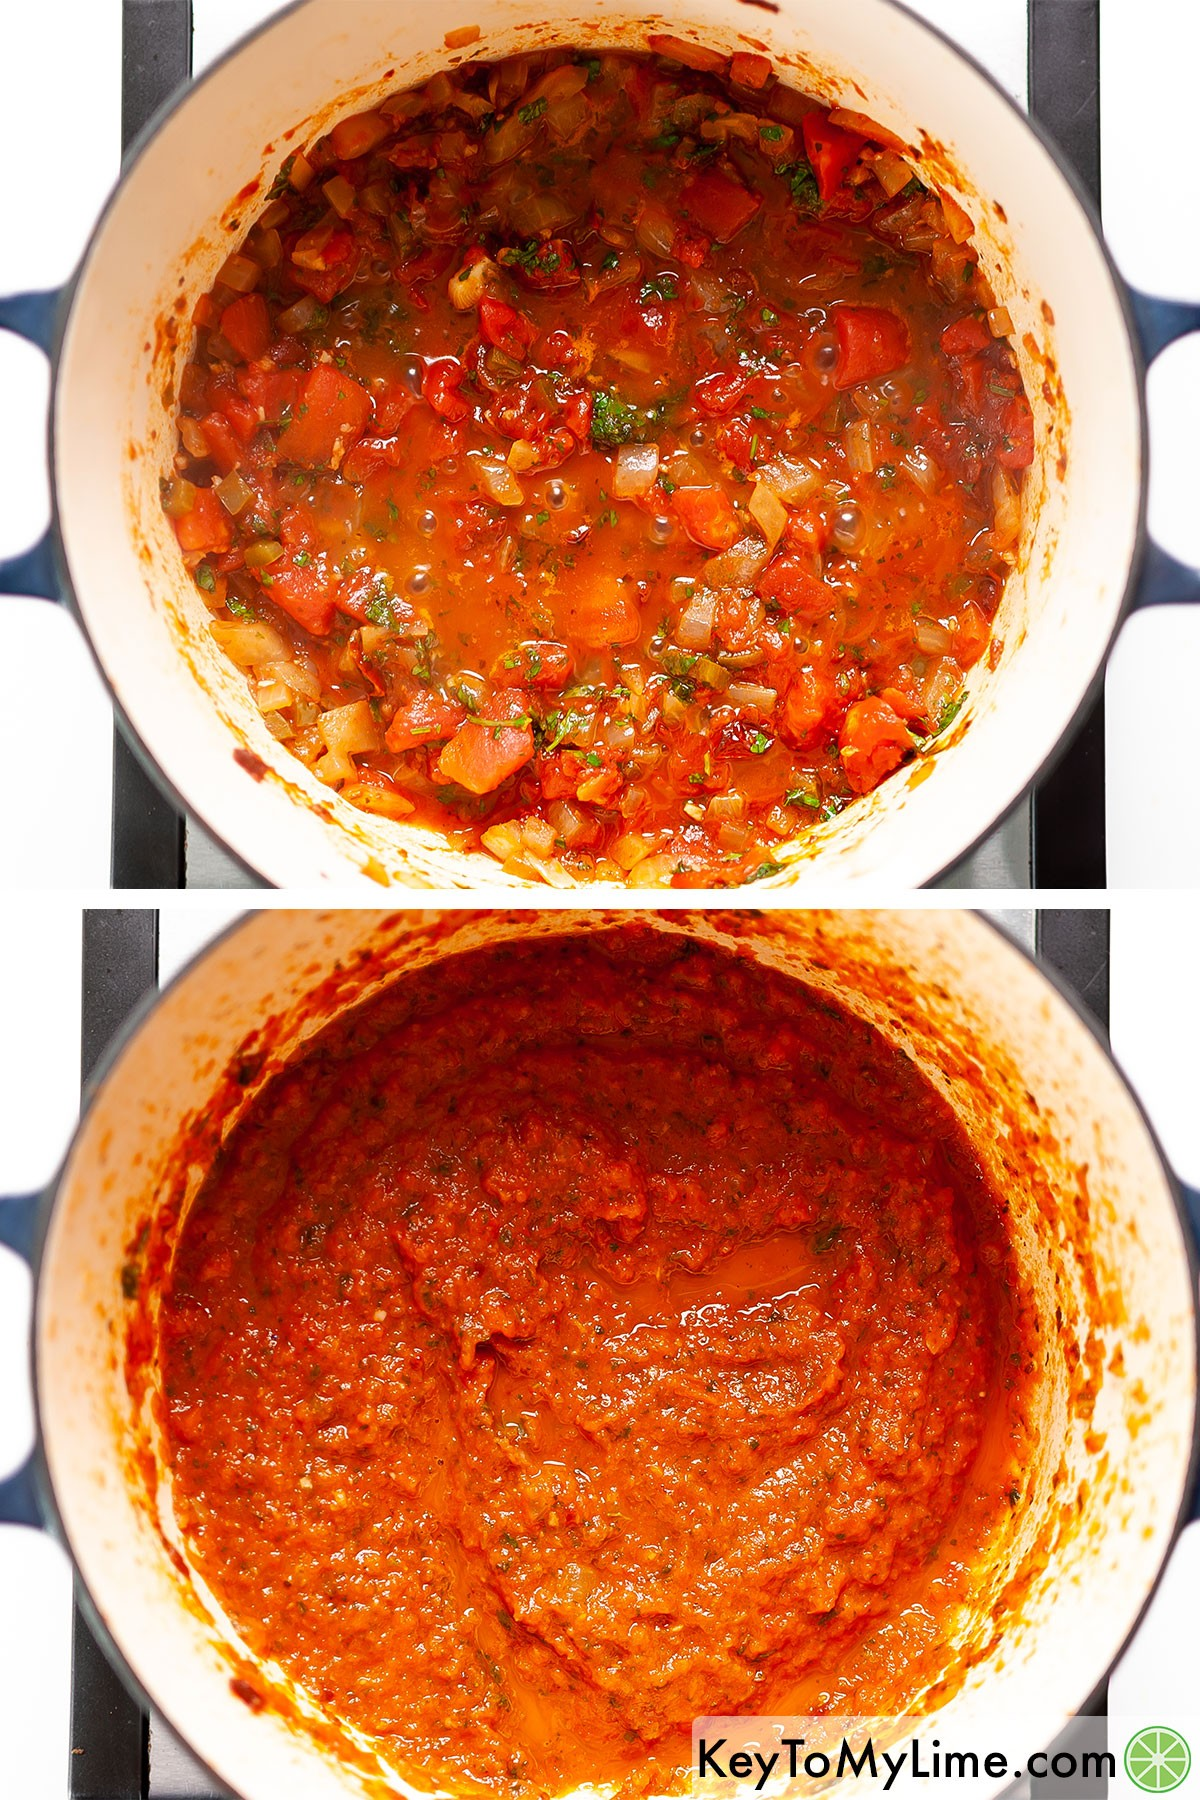 Before and after blending ranchero sauce.